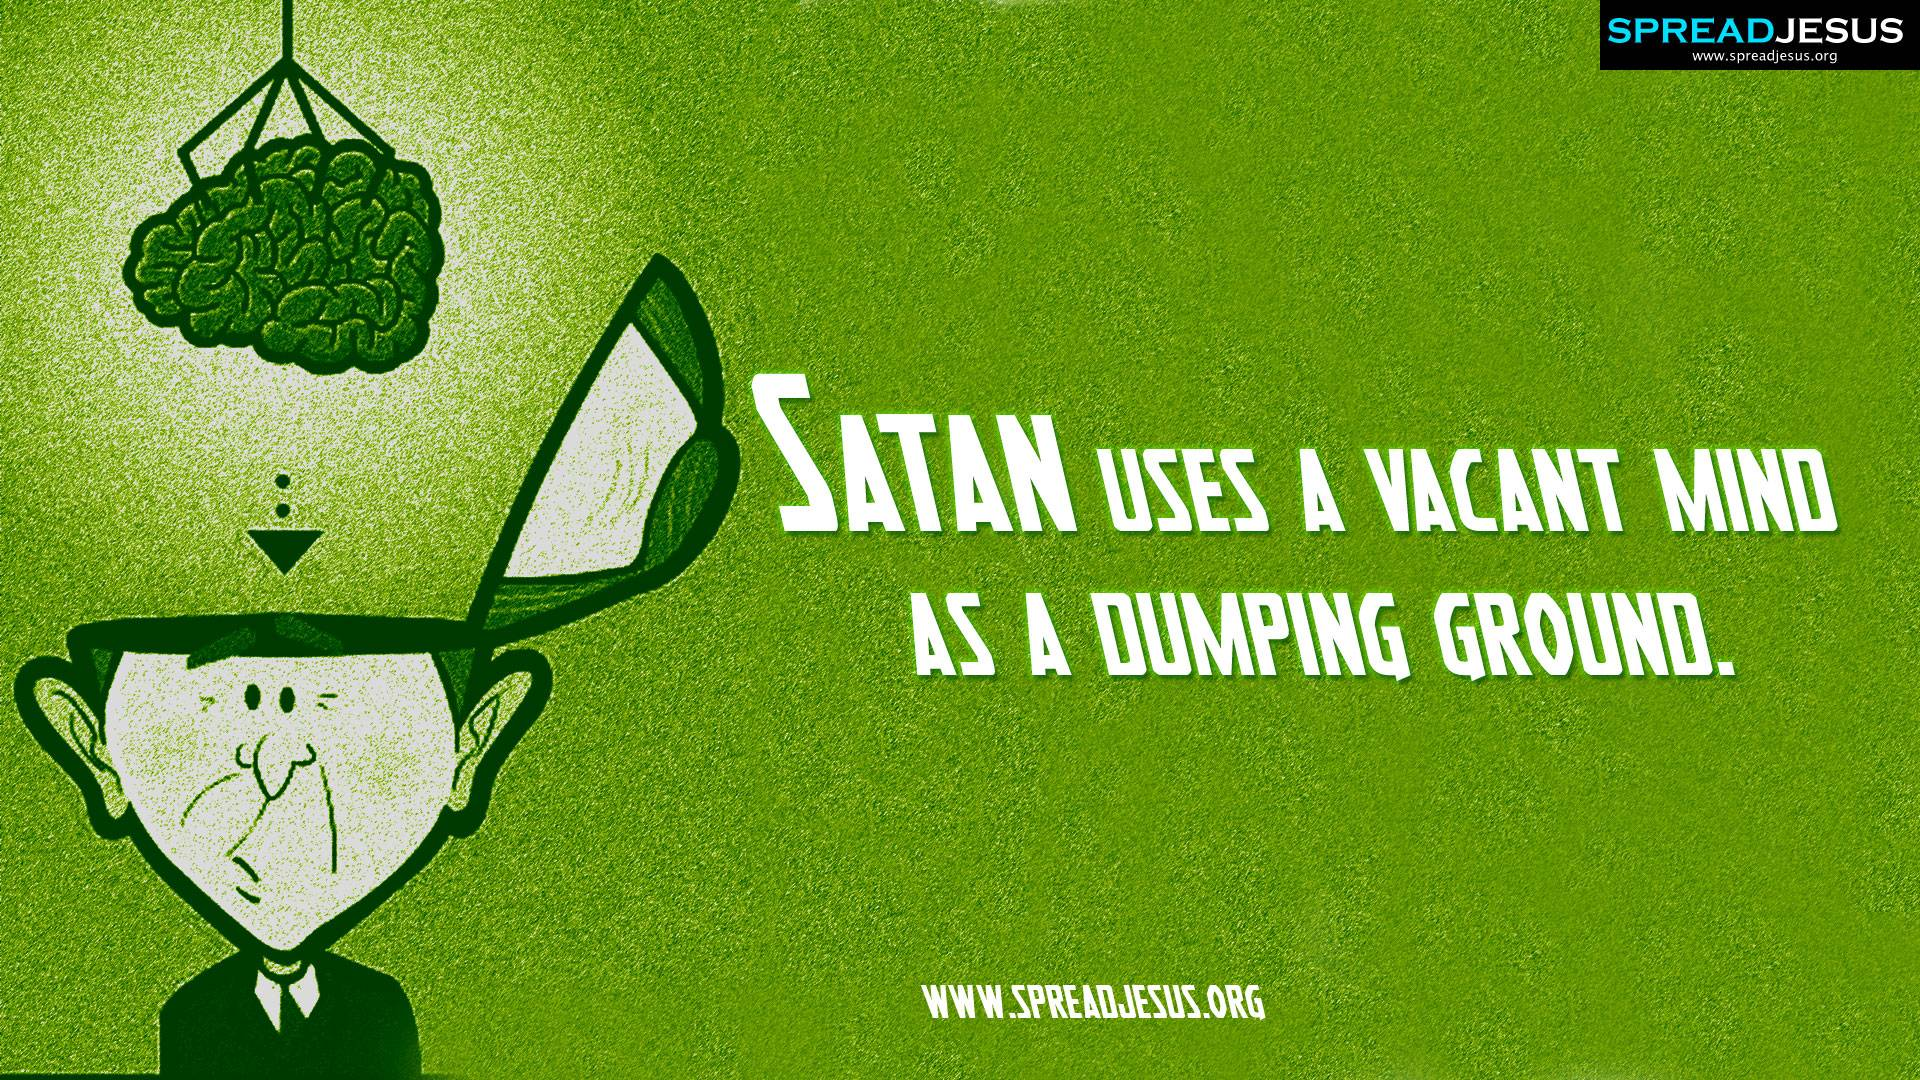 Christian Quotes HD-Wallpaper Download Satan uses a vacant mind